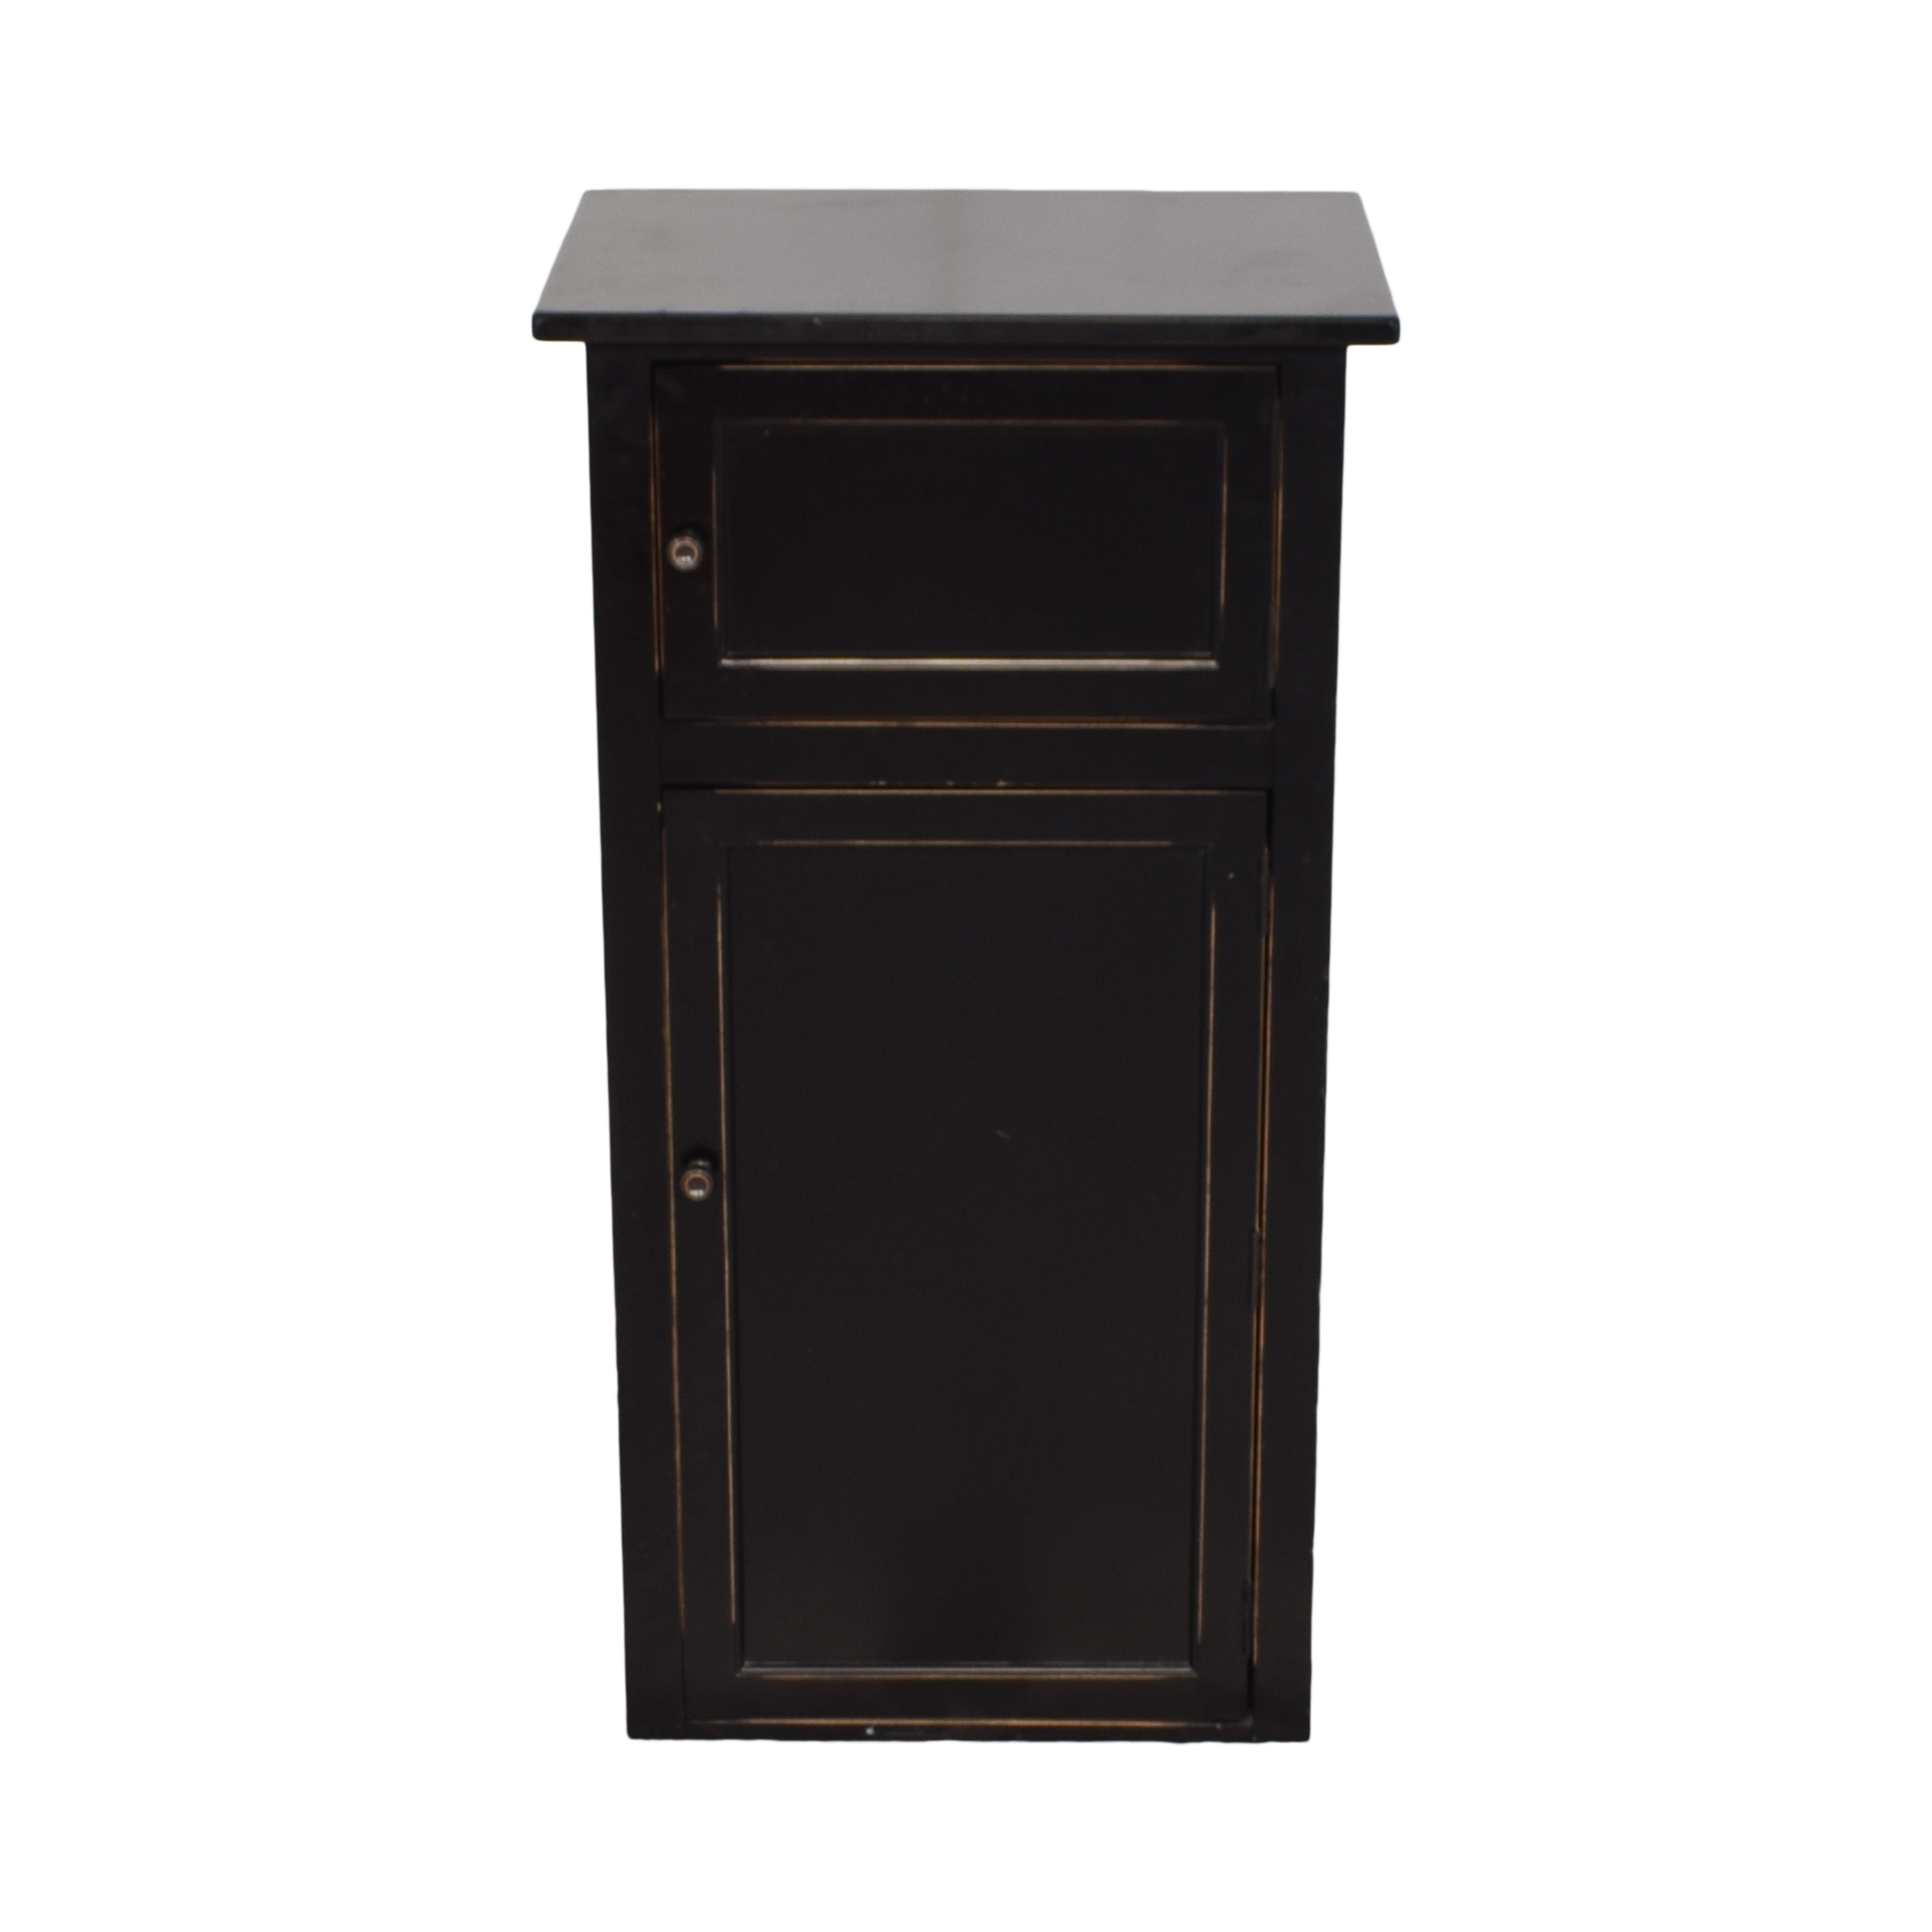 Crate & Barrel Two Door Cabinet / Cabinets & Sideboards